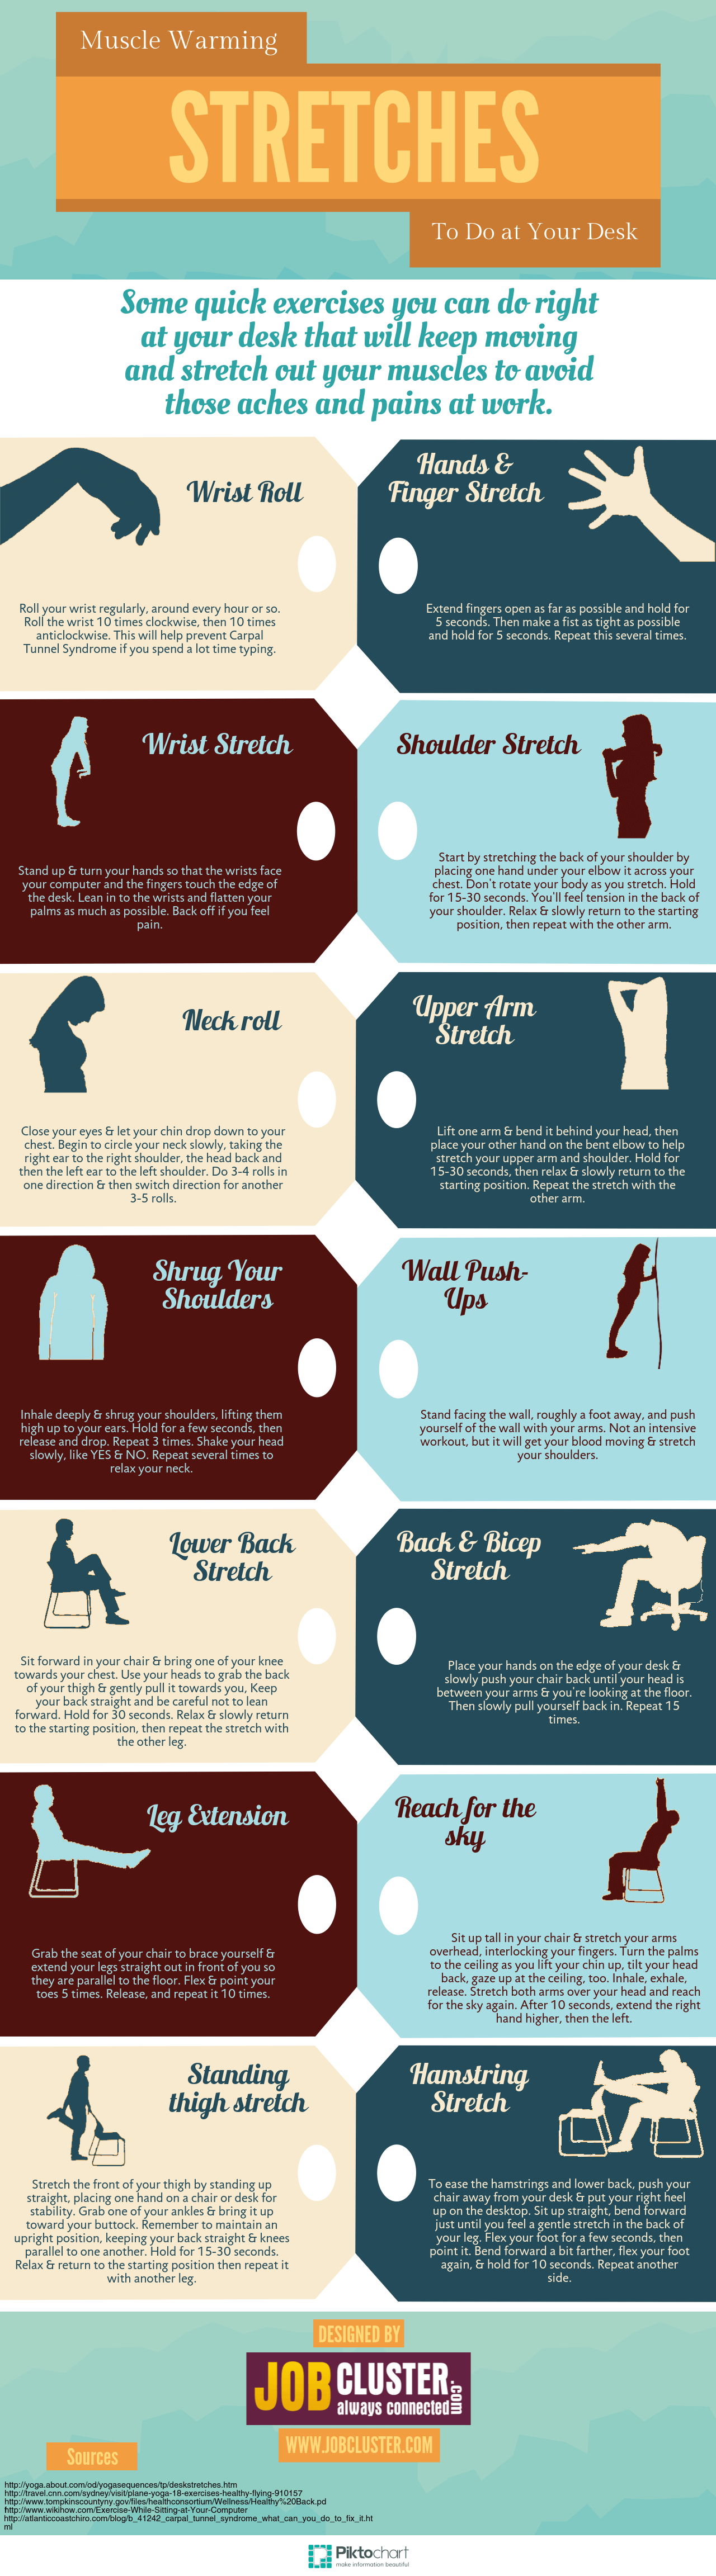 Easy stretching exercises at your desk